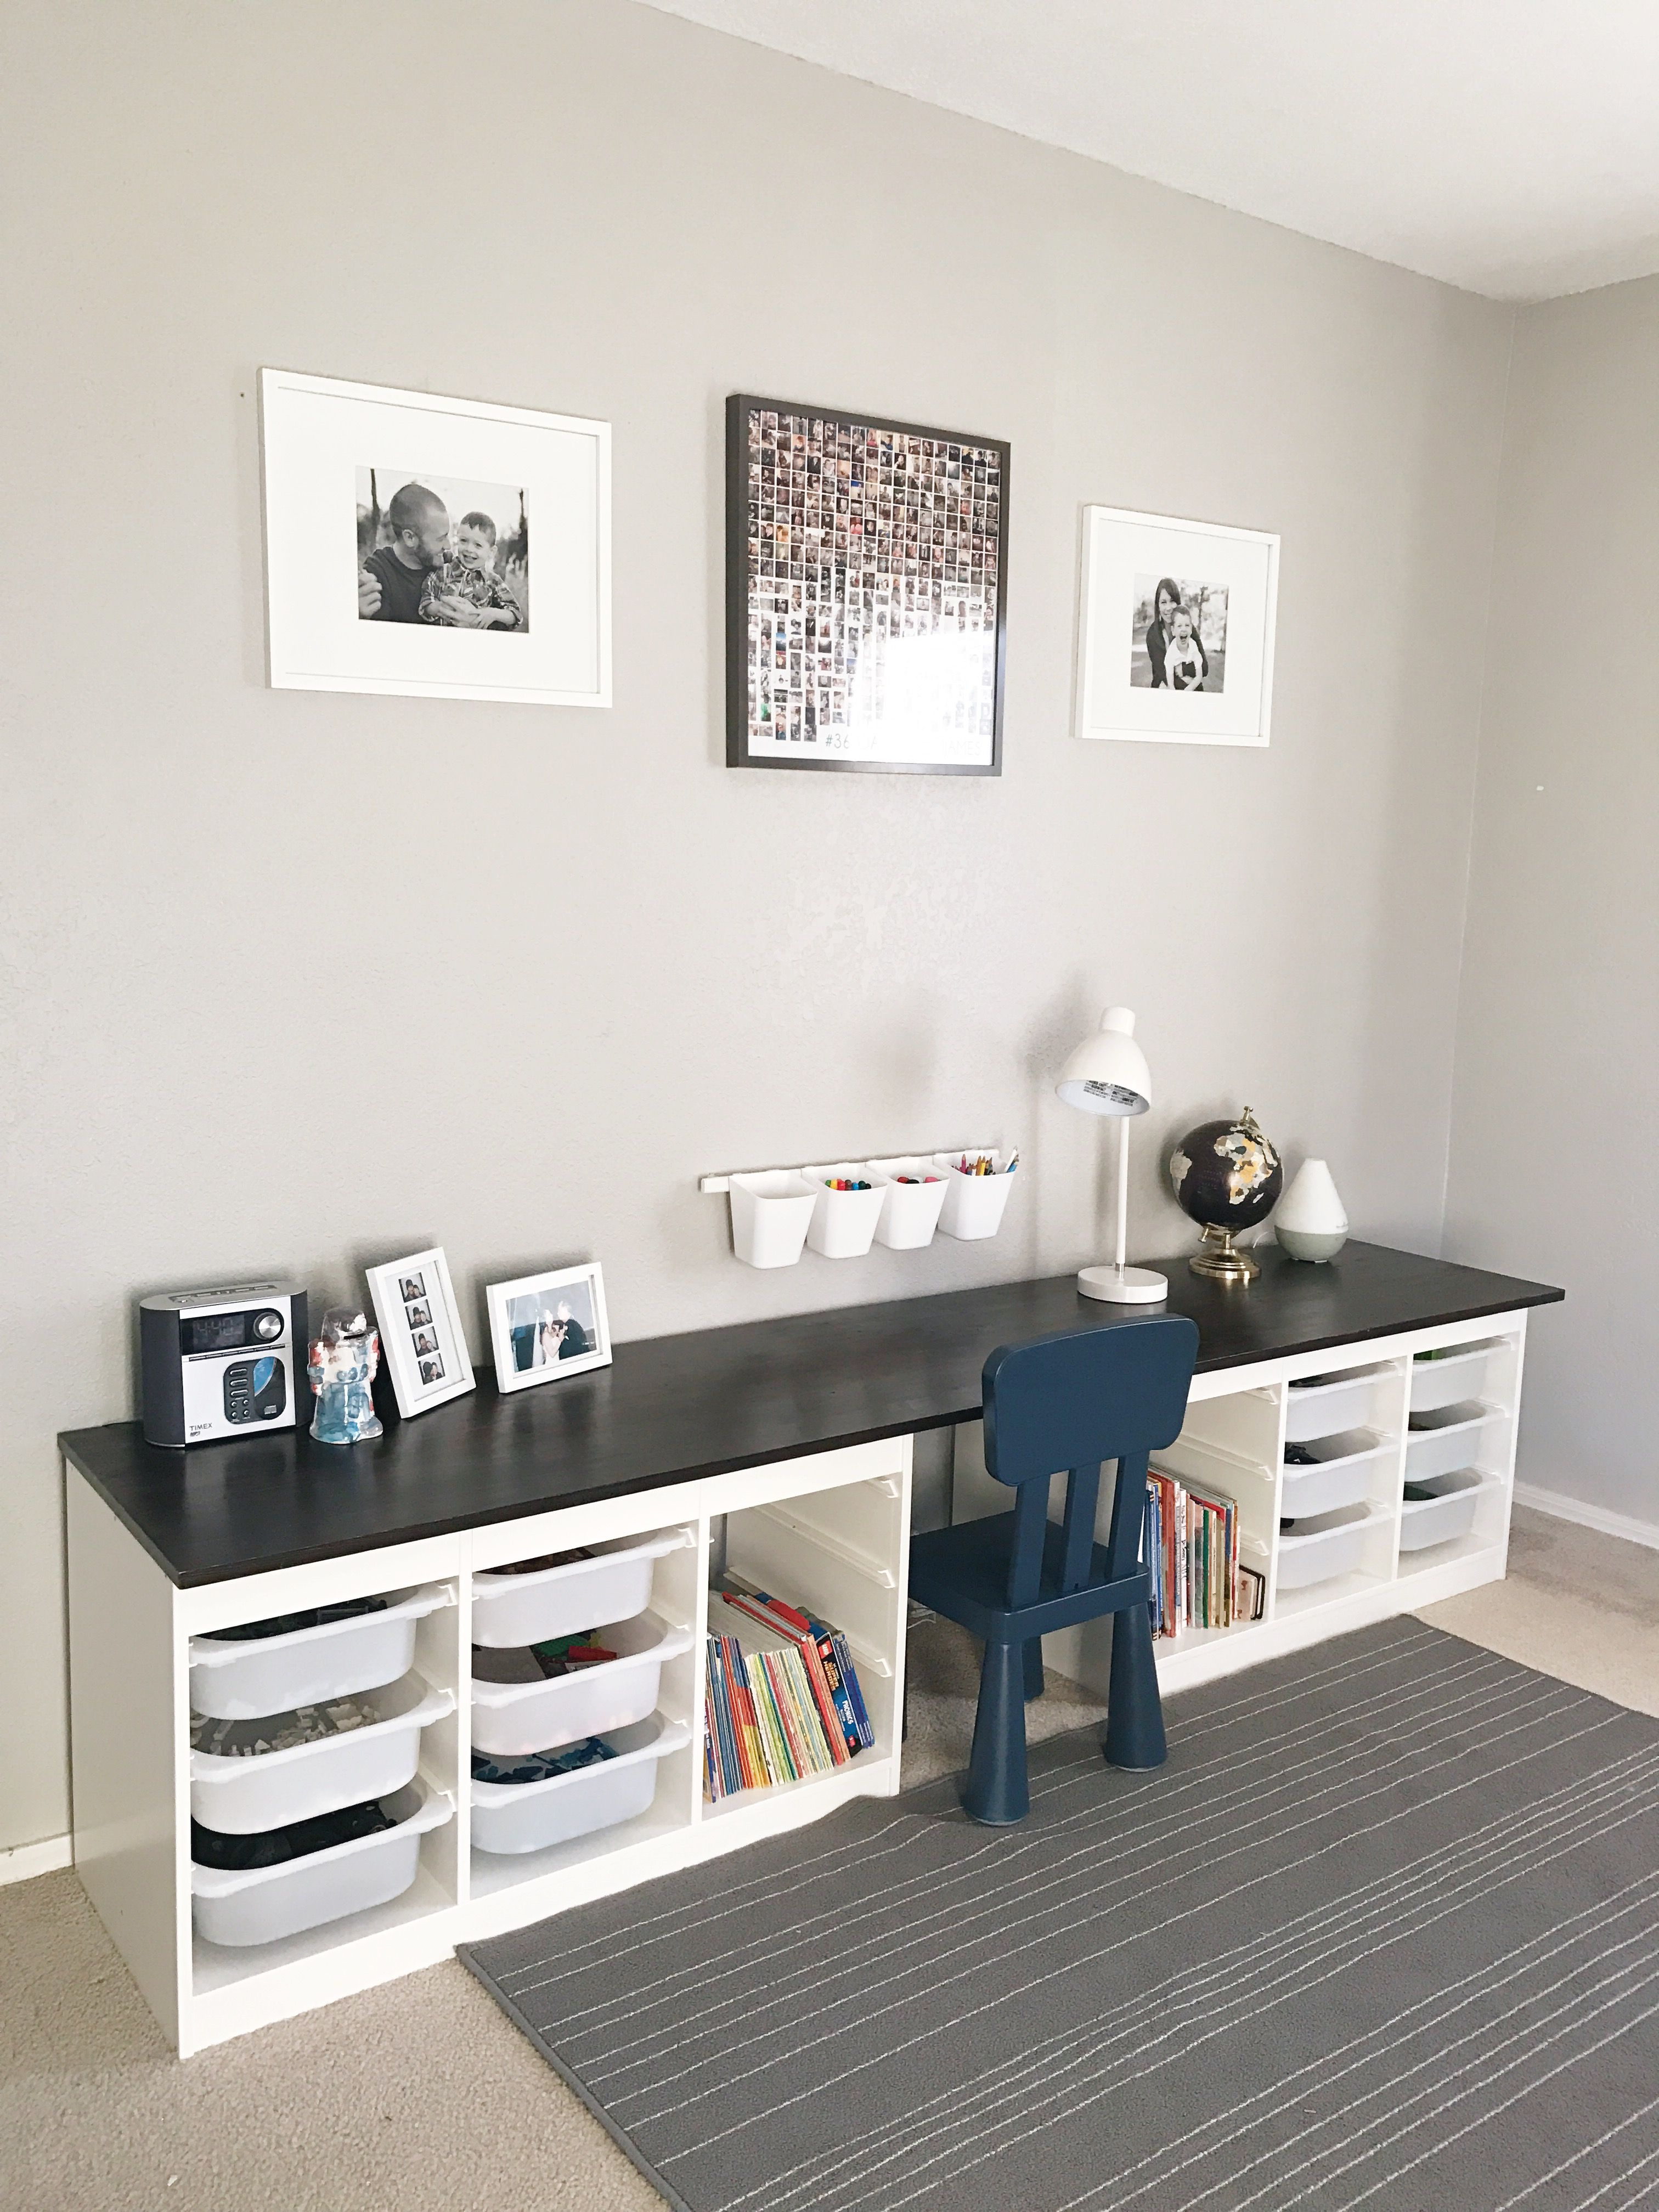 9 Kids Rooms Using Ikea S Trofast As Genius Storage Kid Room Decor Childrens Desk Diy Playroom